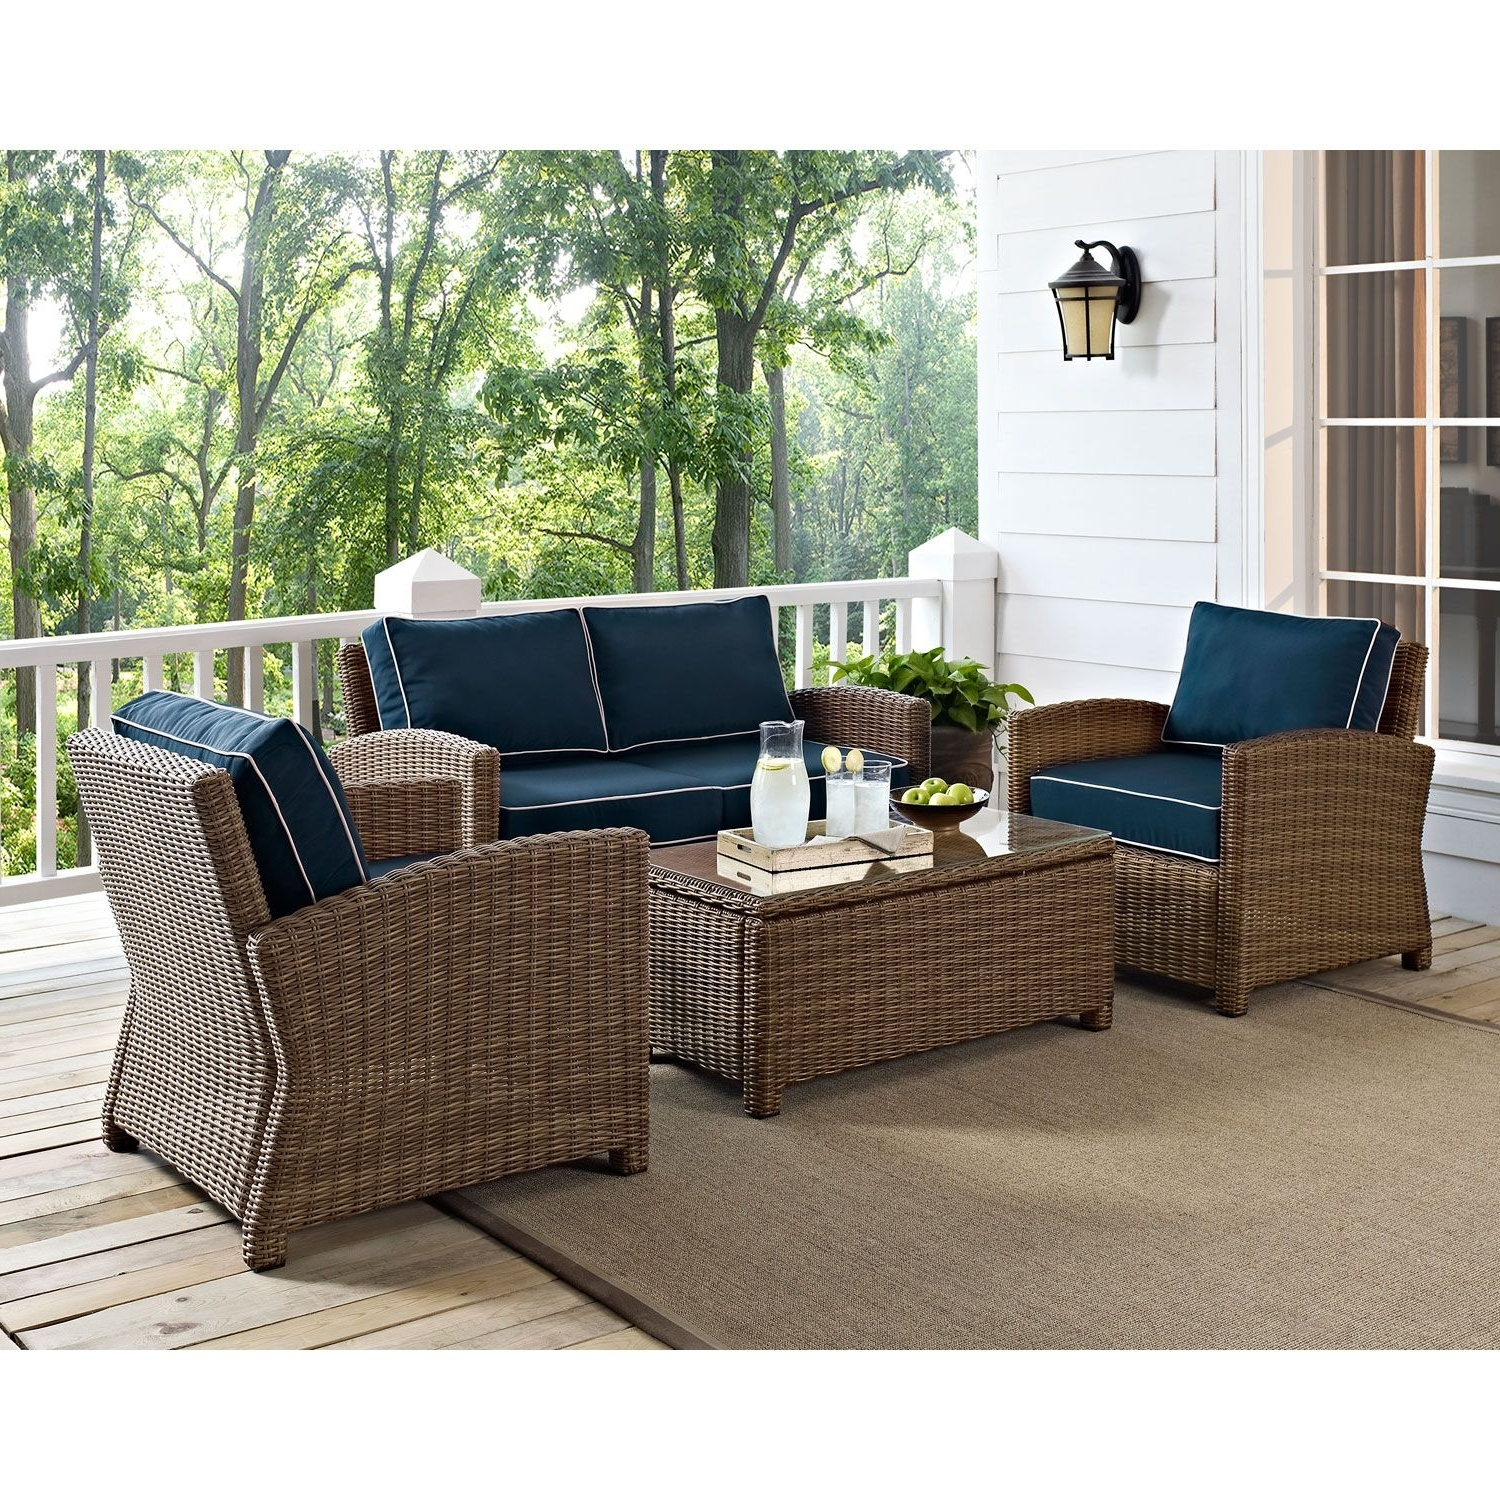 Favorite Crosley Furniture Bradenton 4 Piece Outdoor Wicker Seating Set With With Regard To Patio Conversation Sets With Blue Cushions (View 4 of 20)